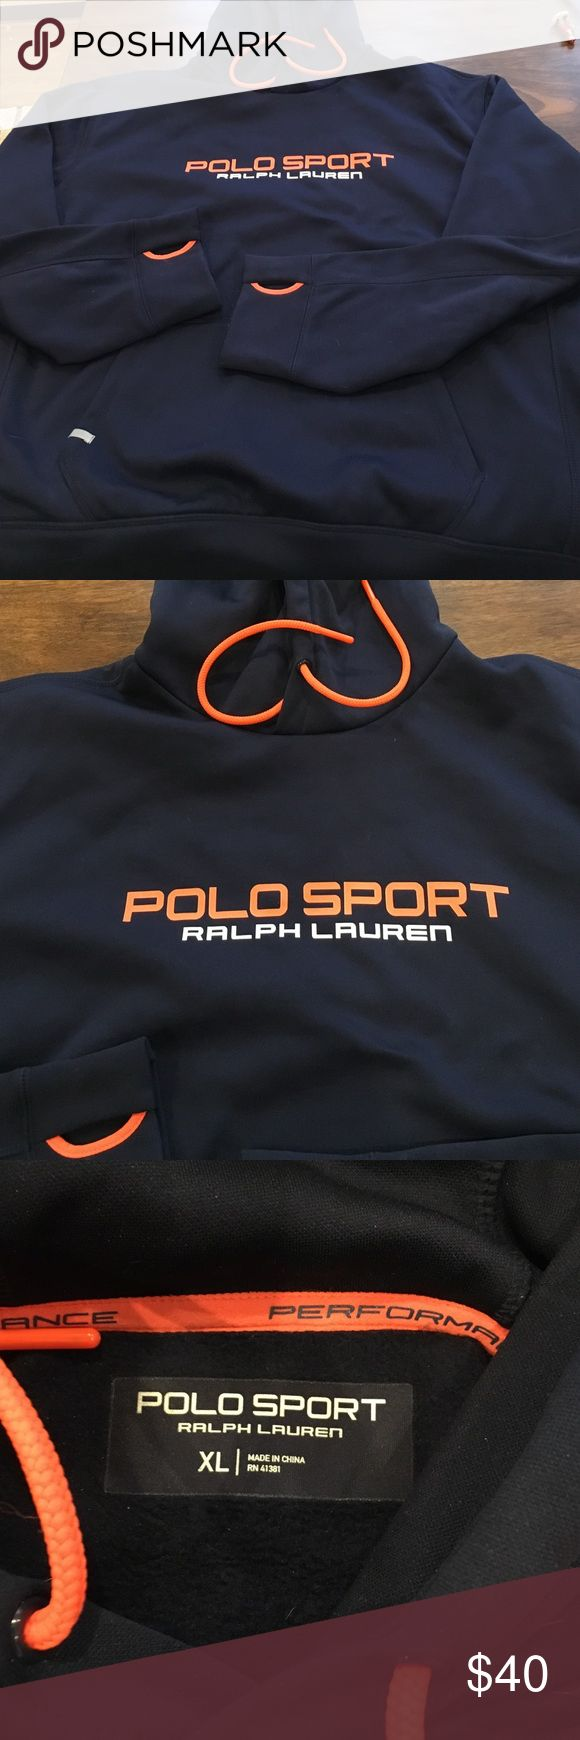 Polo sport navy hoodie In brand new condition. Worn once to try it on. Less than 6 months old. Holes in sleeves for thumbs. Drawstring hood. Size XL Ralph Lauren Sweaters Crewneck